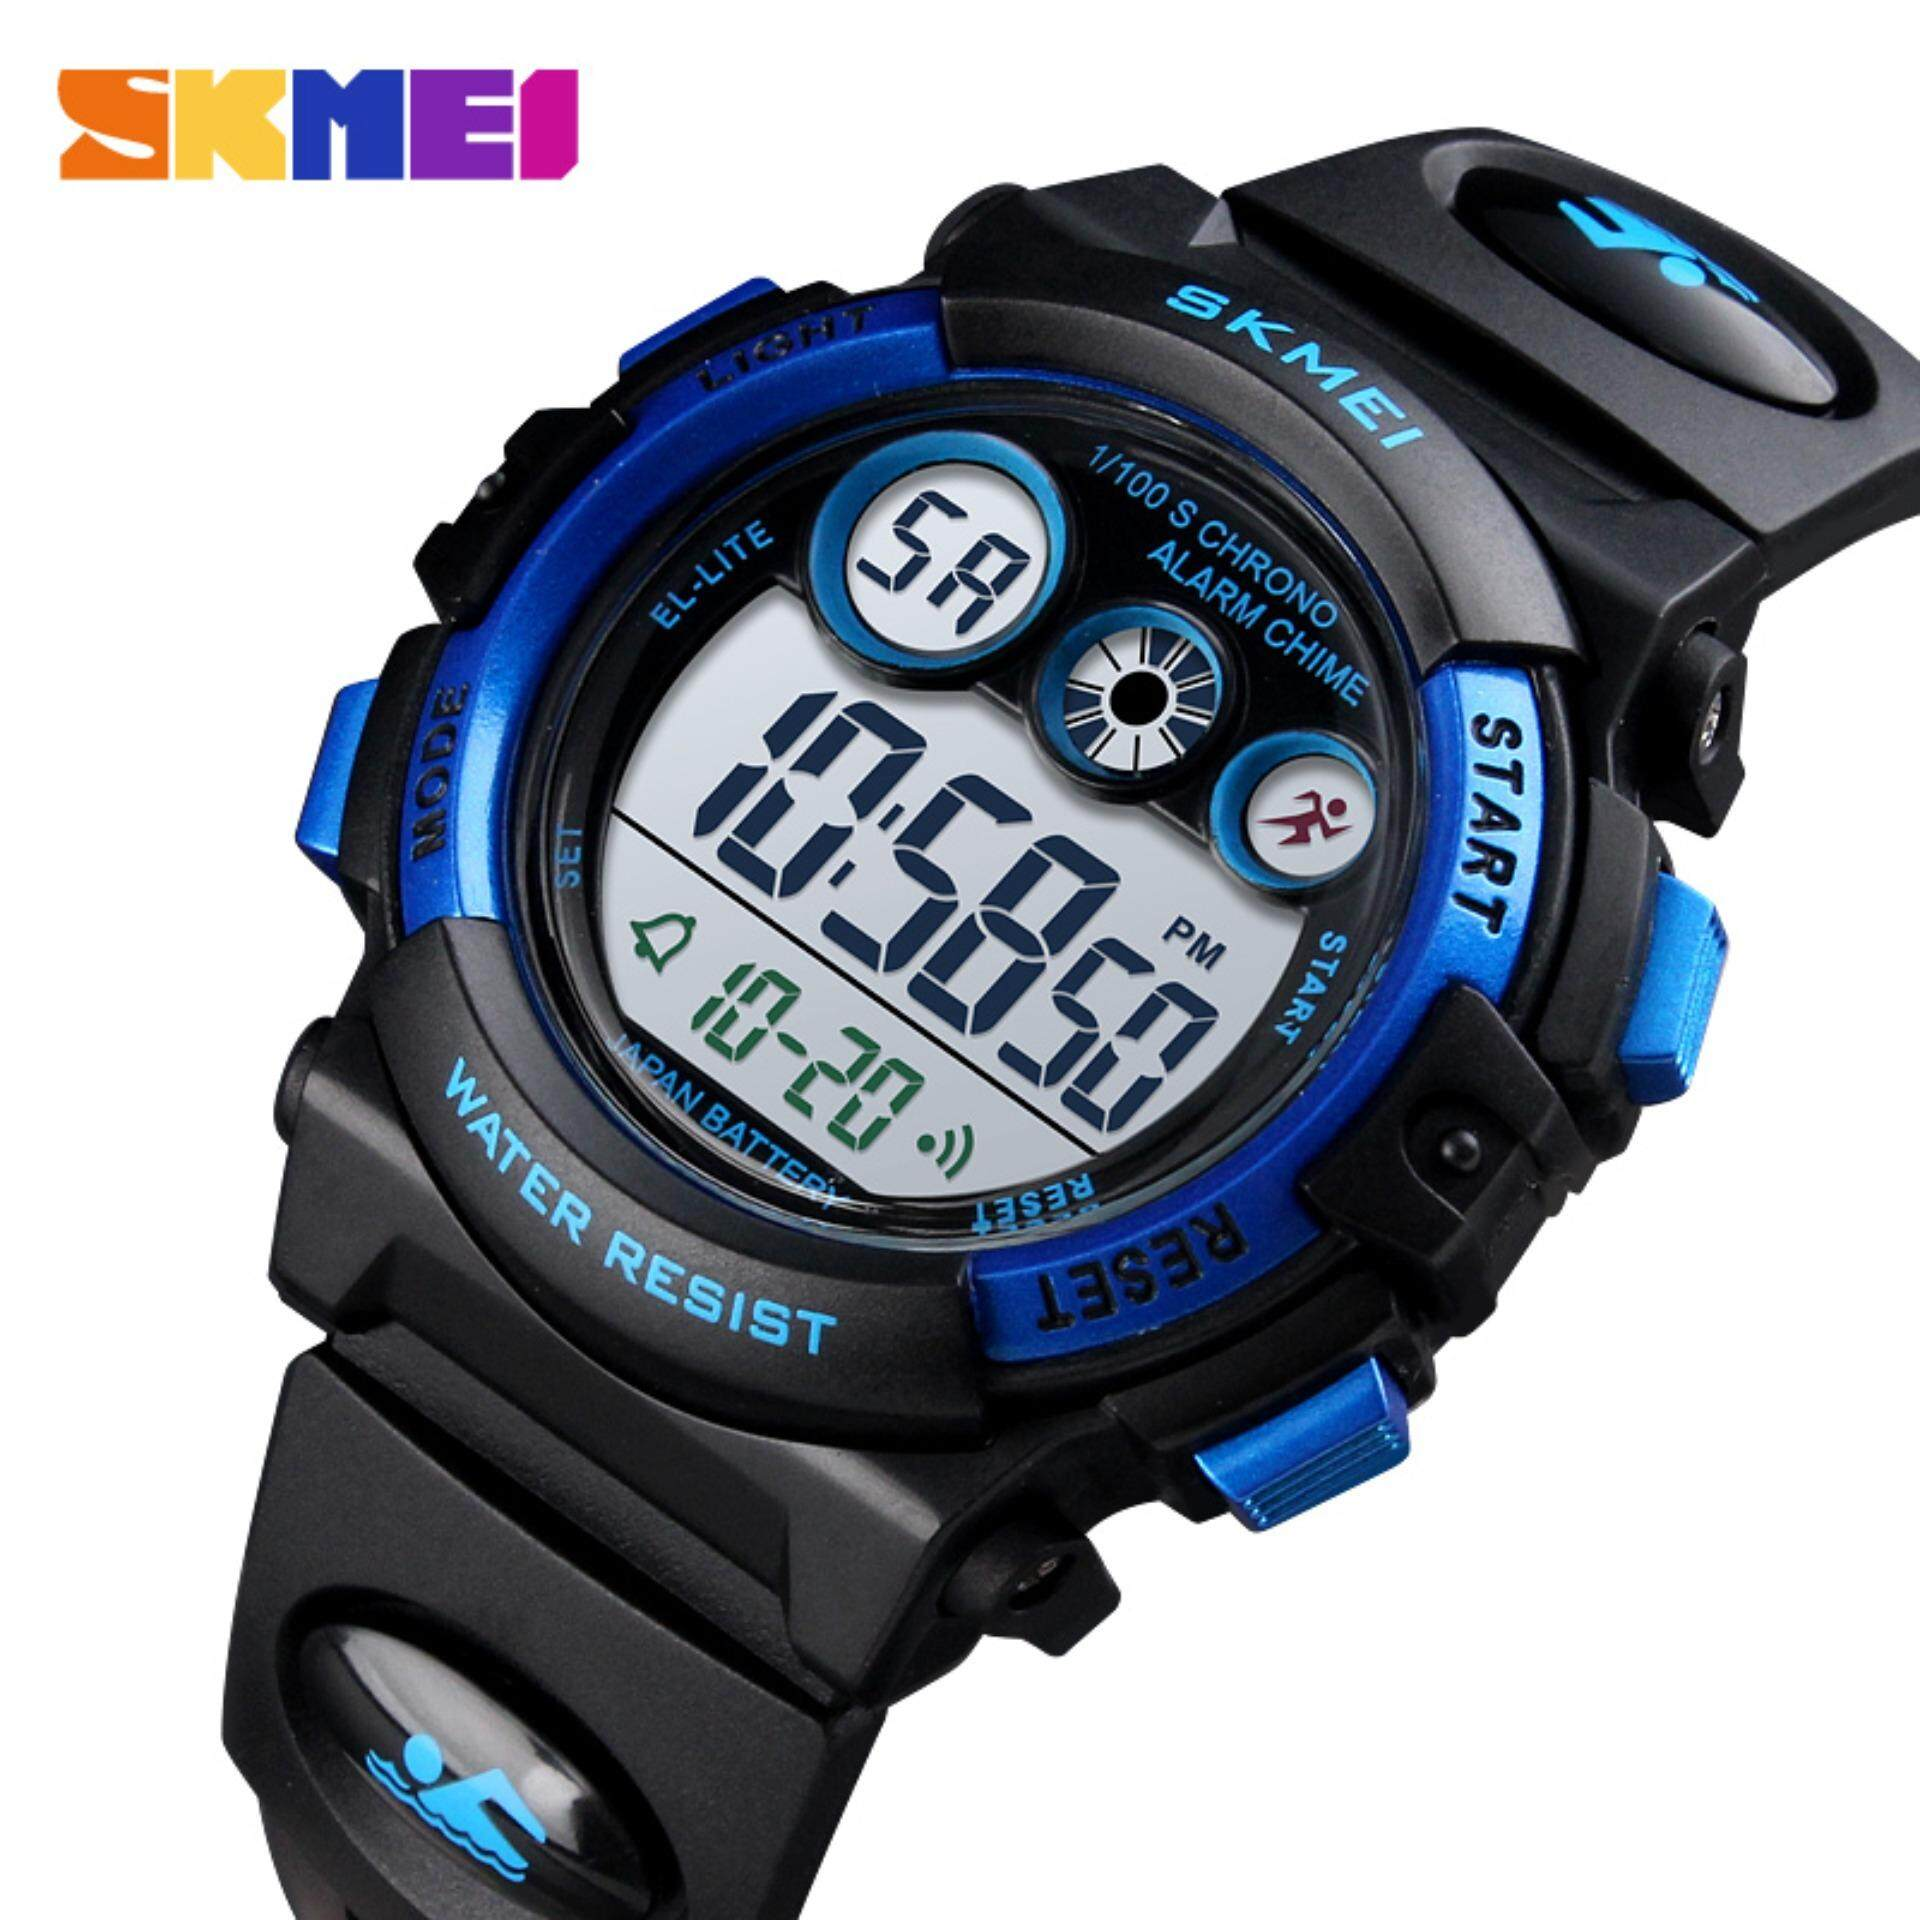 [11.11 Mega Offer] SKMEI Brand Sport Children Watch Waterproof LED Digital Watches Multifunction Sports Electronic Watch for Kids Boys Girls Gifts 1451 Malaysia